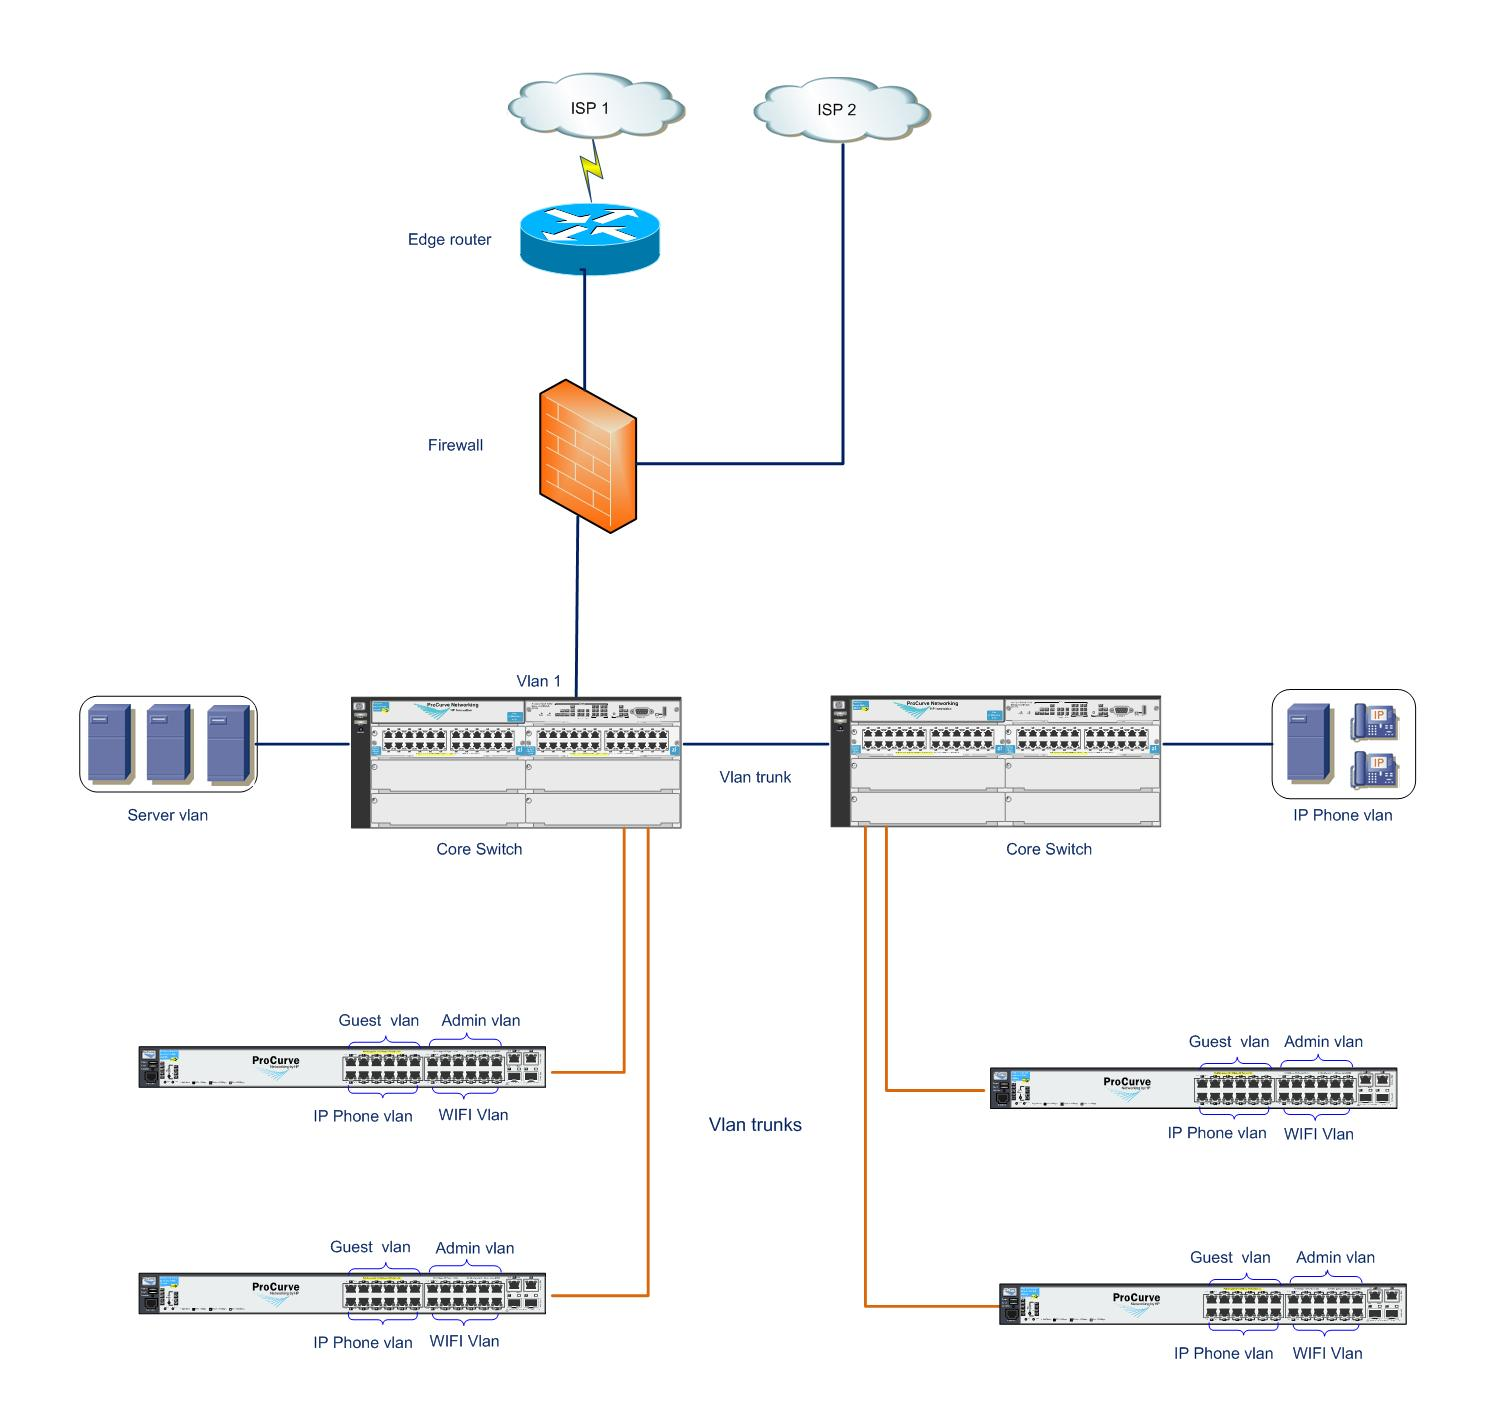 vlan design on HP procurve - Hewlett Packard Enterprise Community